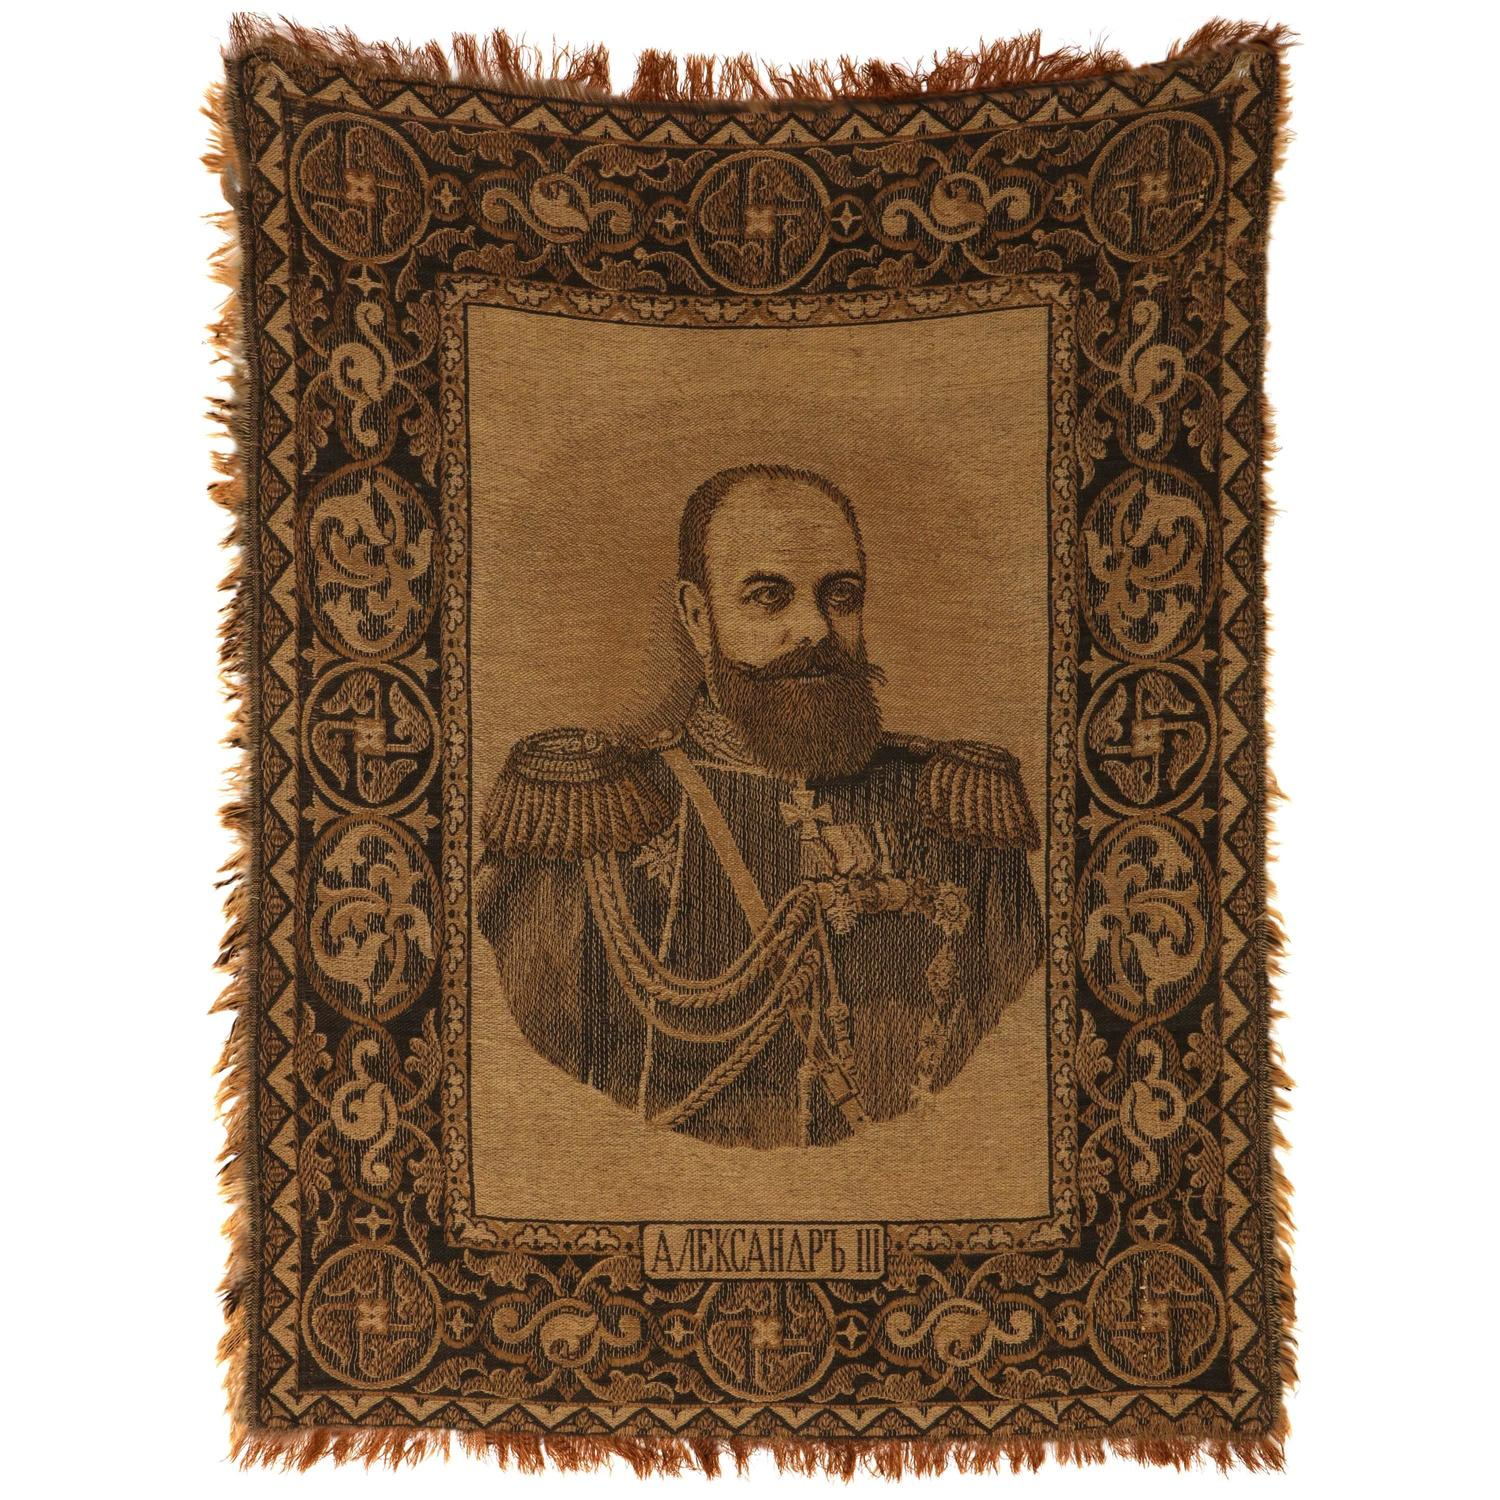 Tapestry of Tsar Alexander III Commemorating the Franco-Russian Alliance of 1894 1